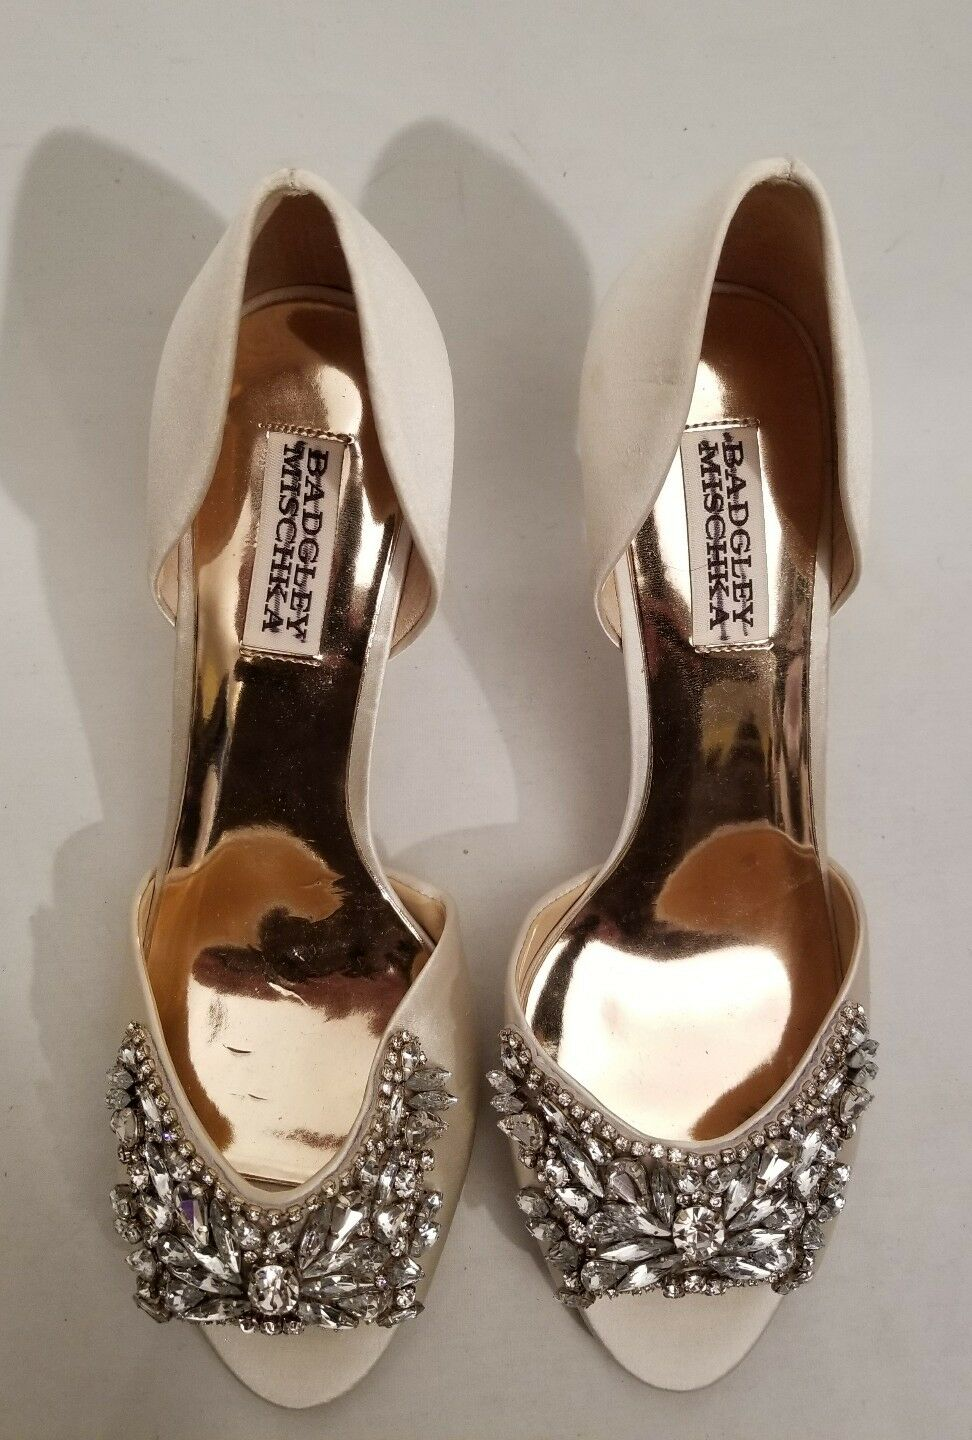 Badgley Mischka BHLDN Candance BHLDN Mischka Embellished Heels Ivory Evening Sz 7.5 8.5 9 New 0a4237